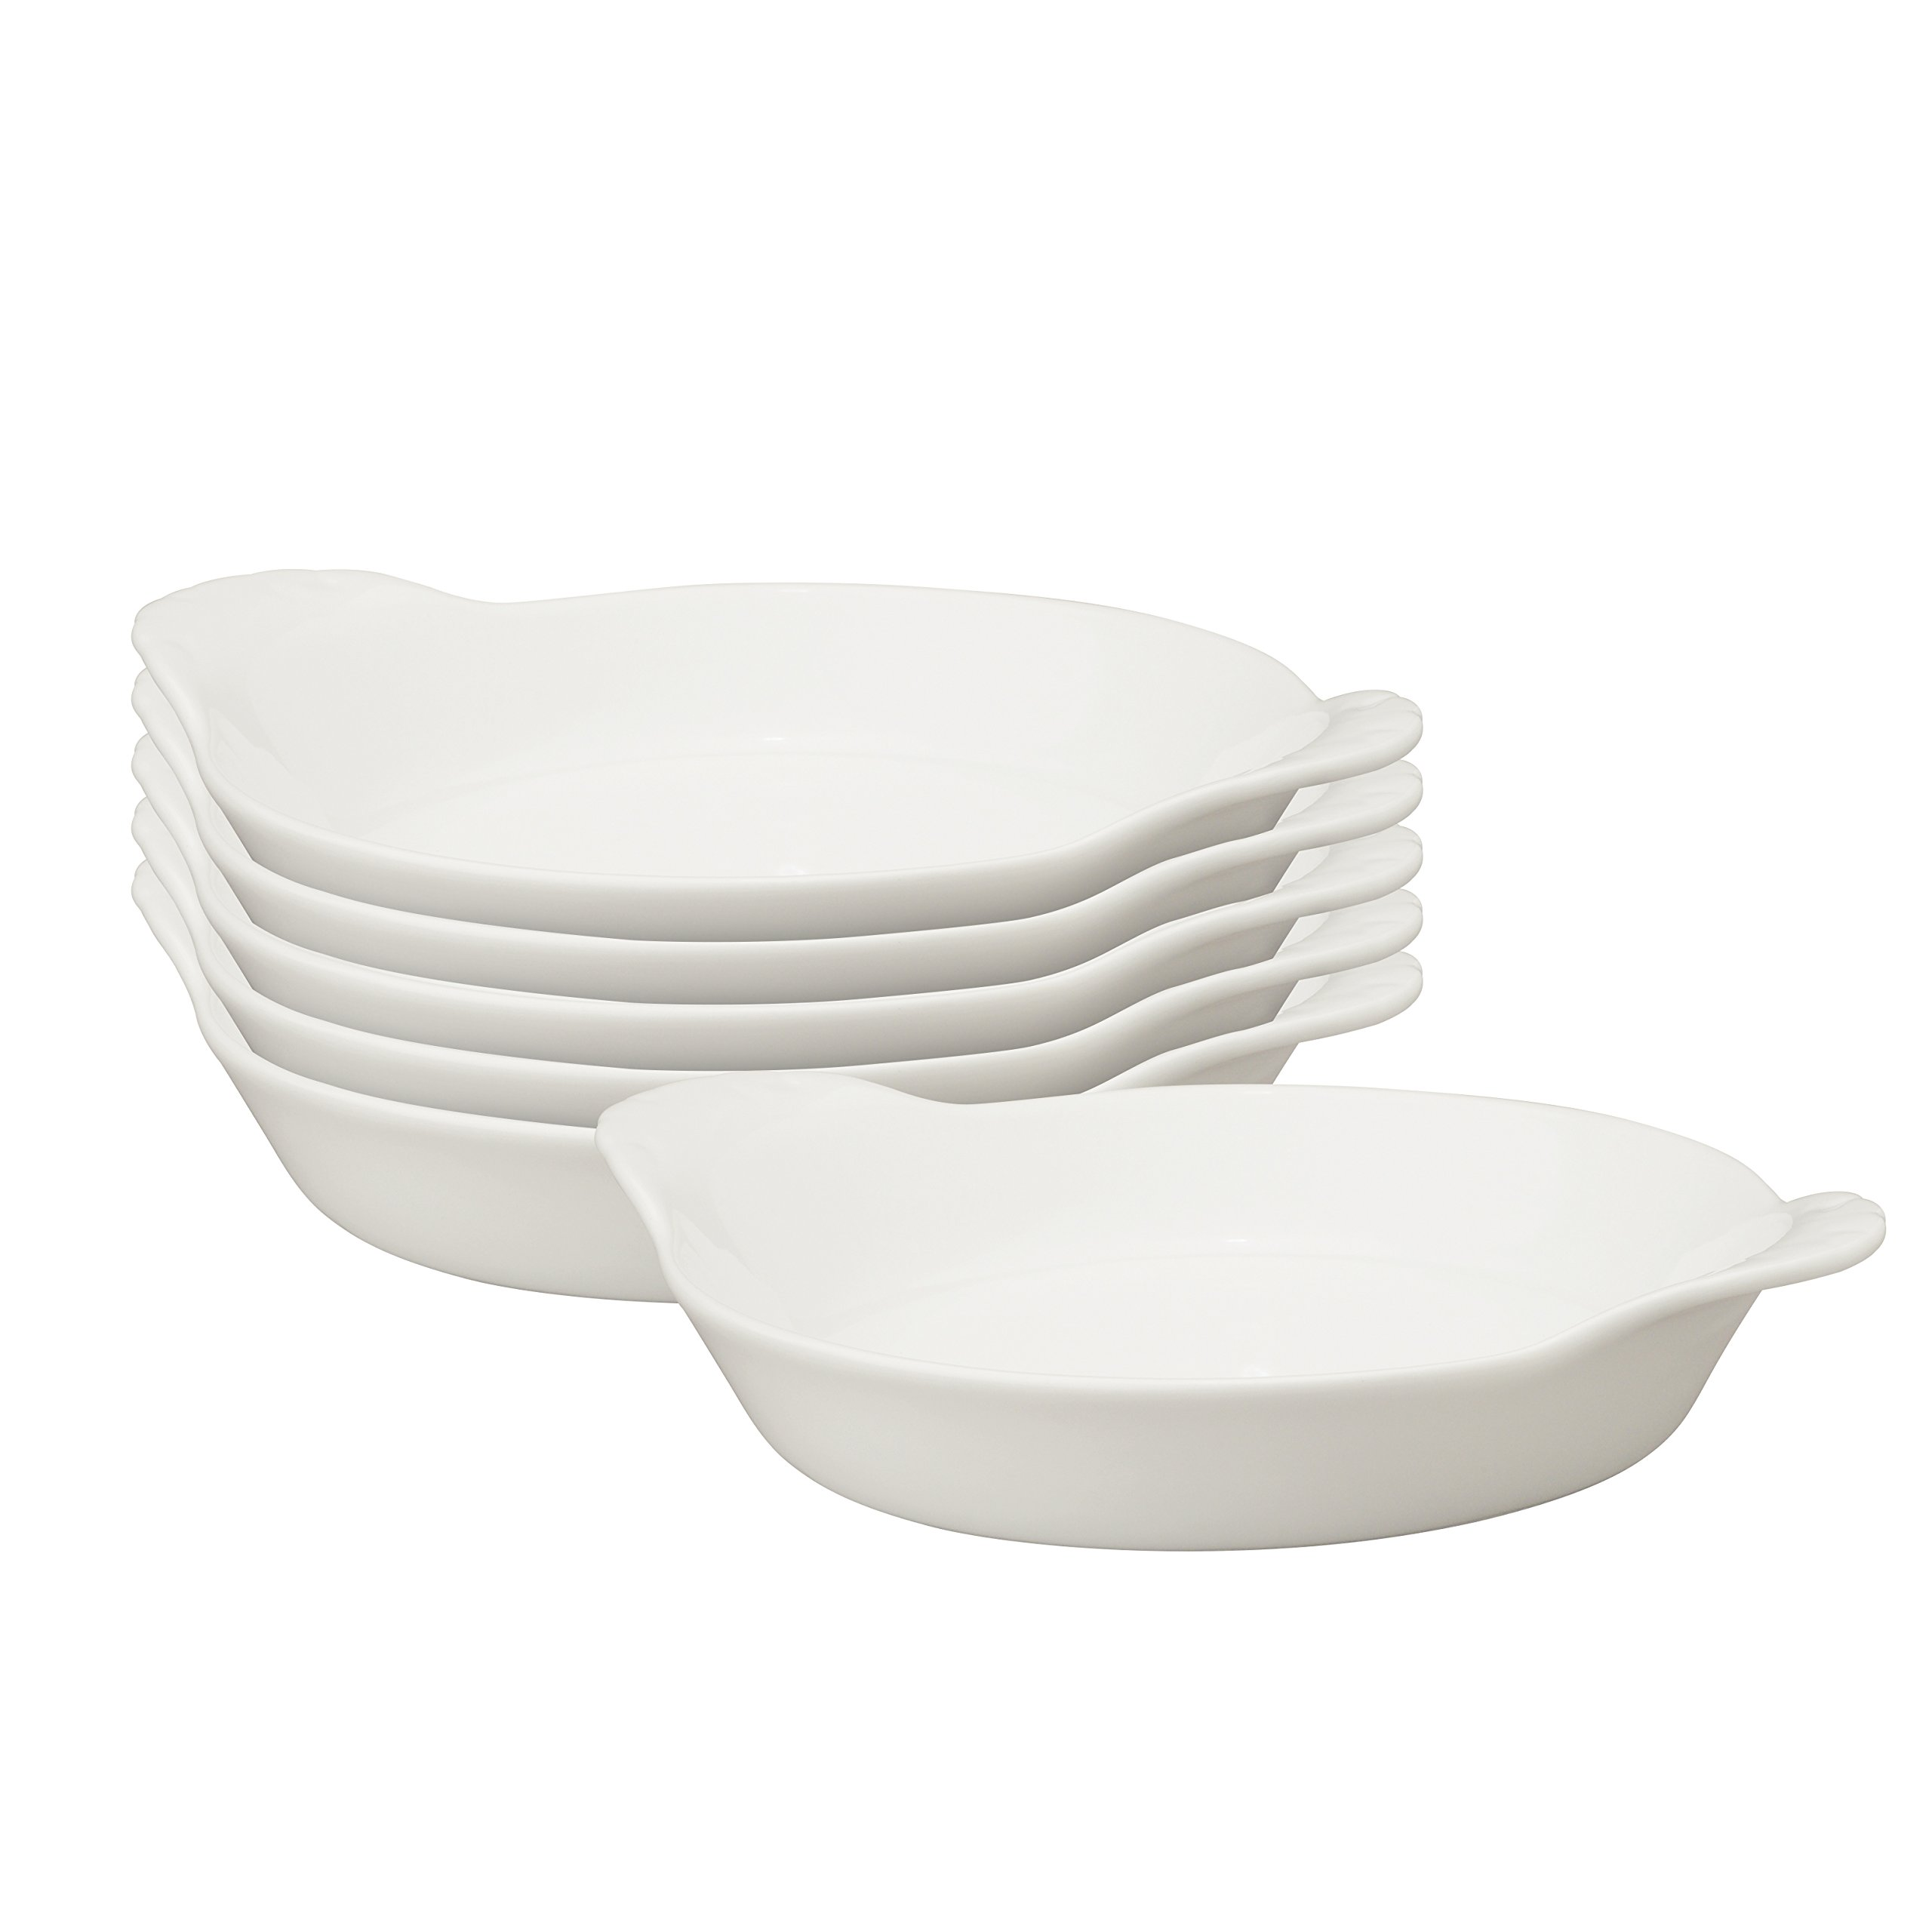 HIC Round Au Gratin Baking Dishes, Porcelain, 4-Ounce, 5-Inch, Set of 6 by HIC Harold Import Co.